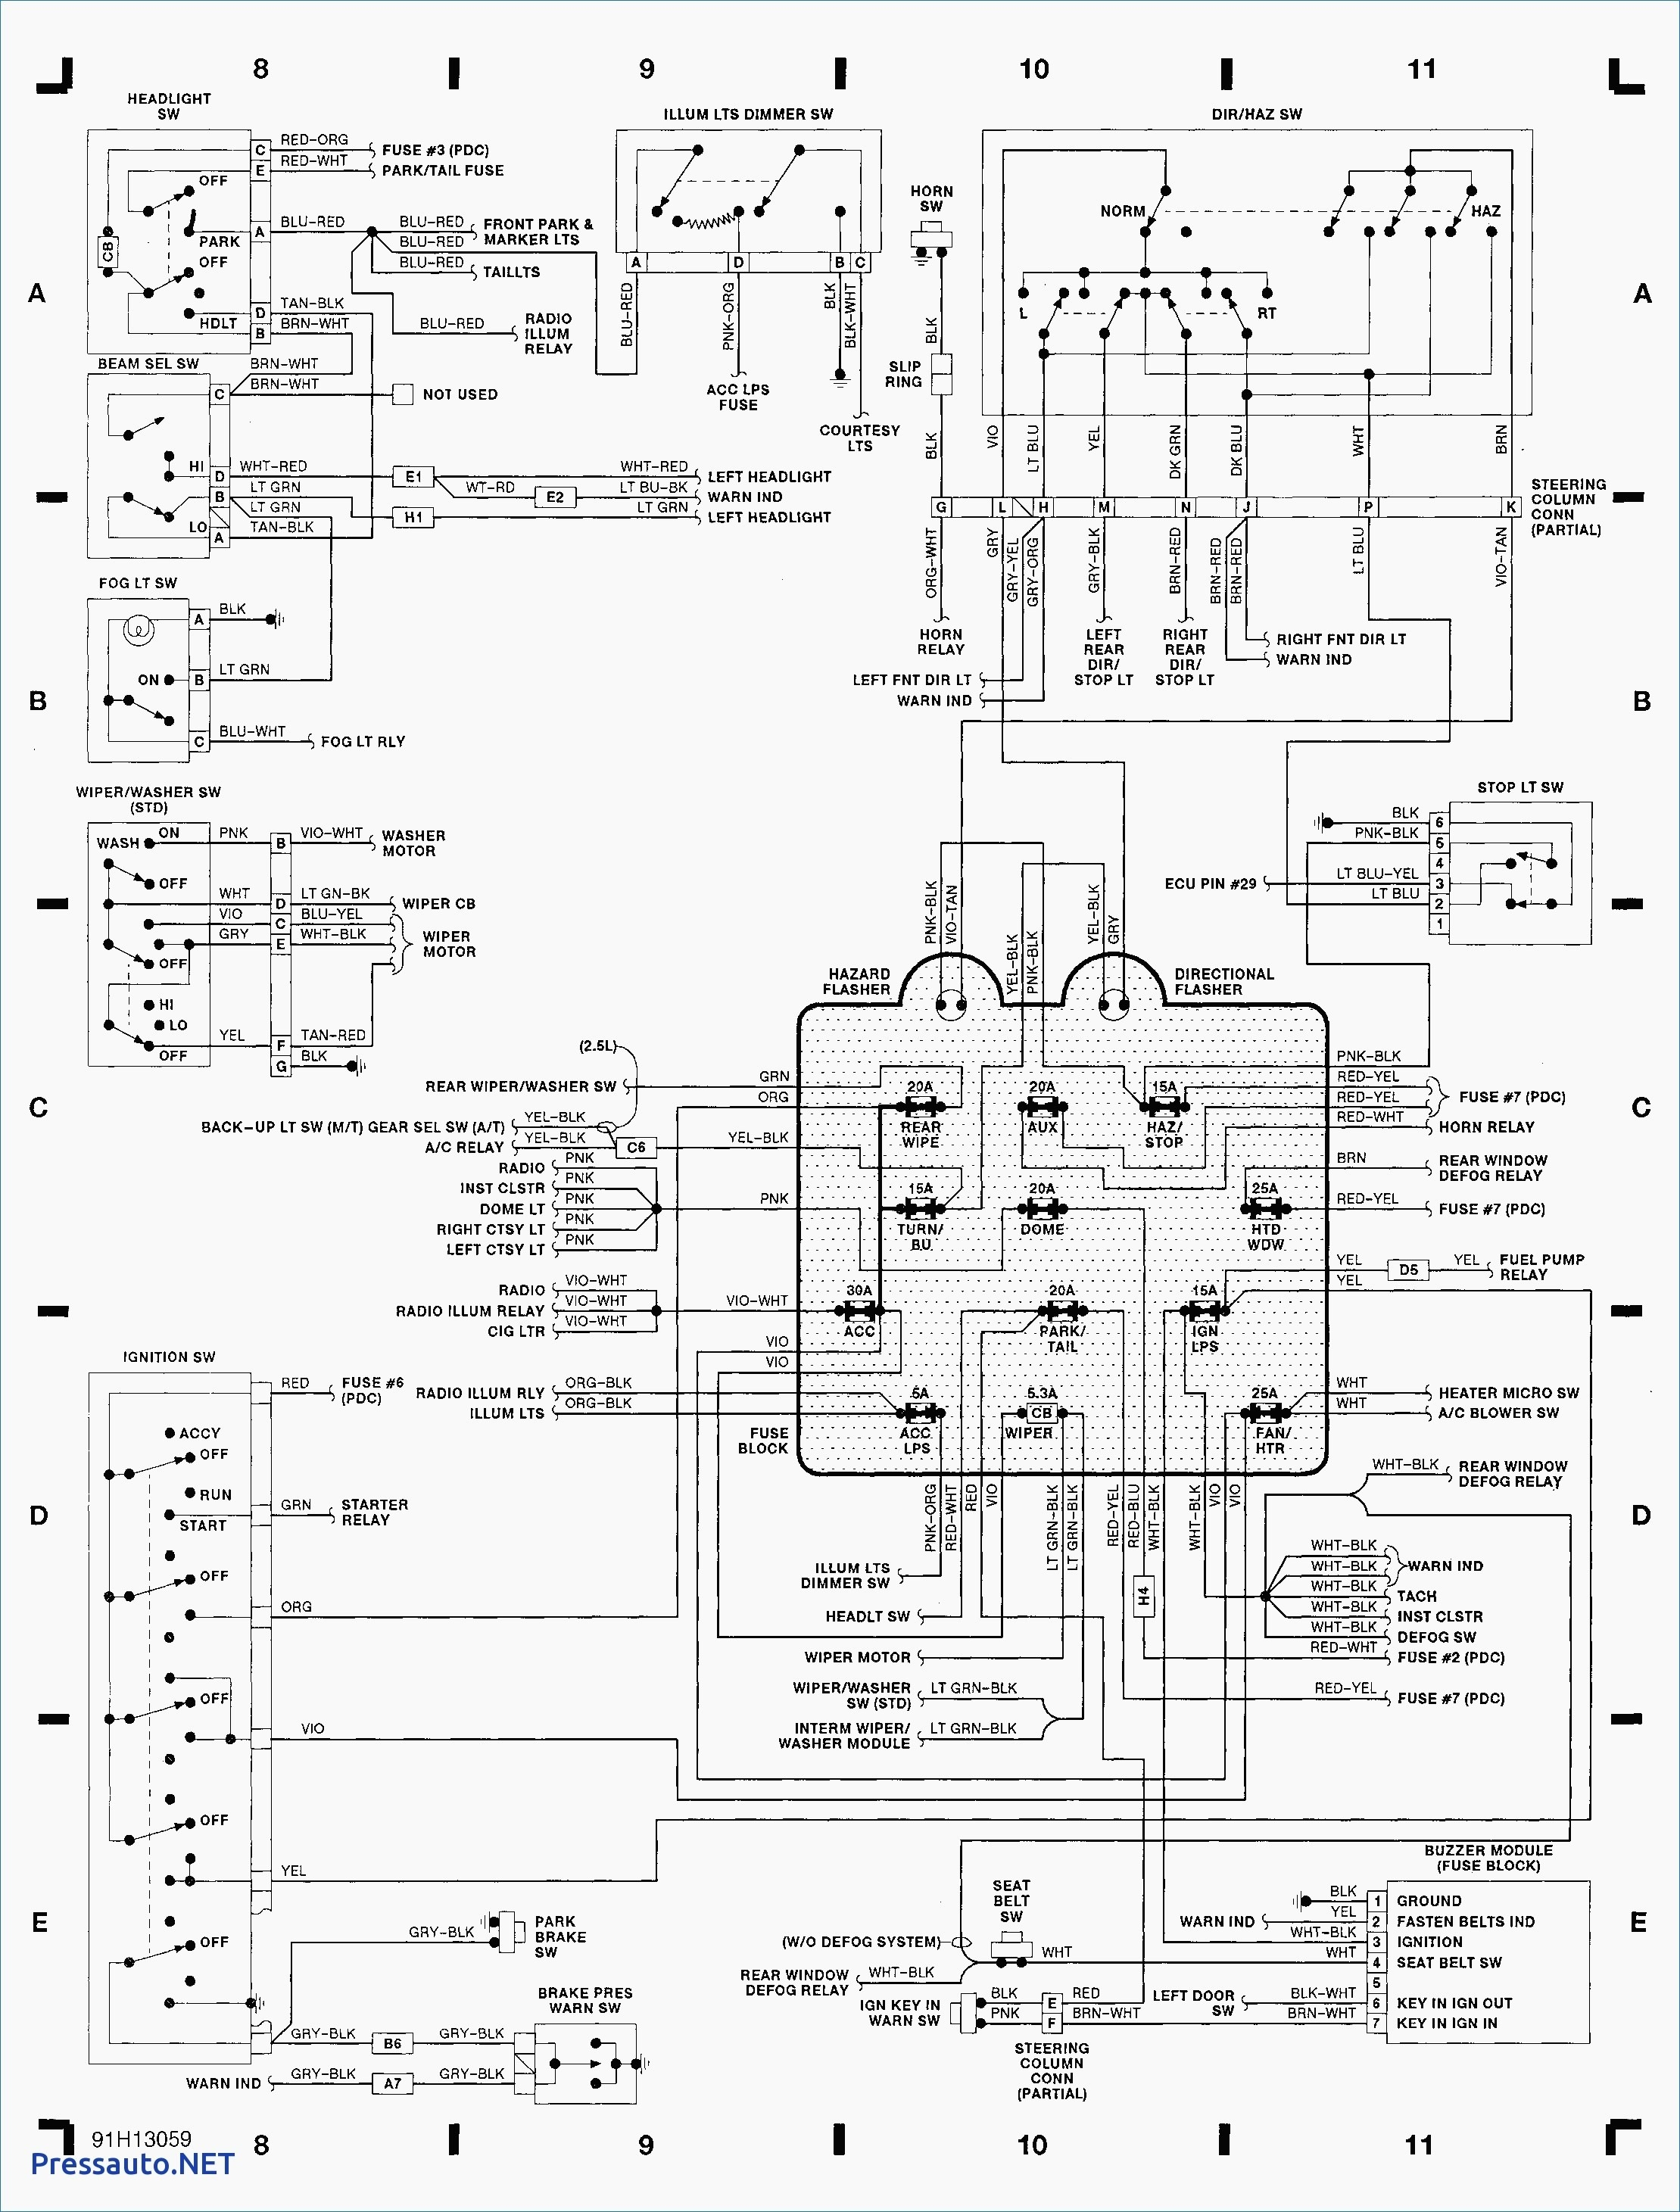 2000 jeep wrangler stereo wiring diagram jeep wrangler stereo wiring diagram for 2008 #10